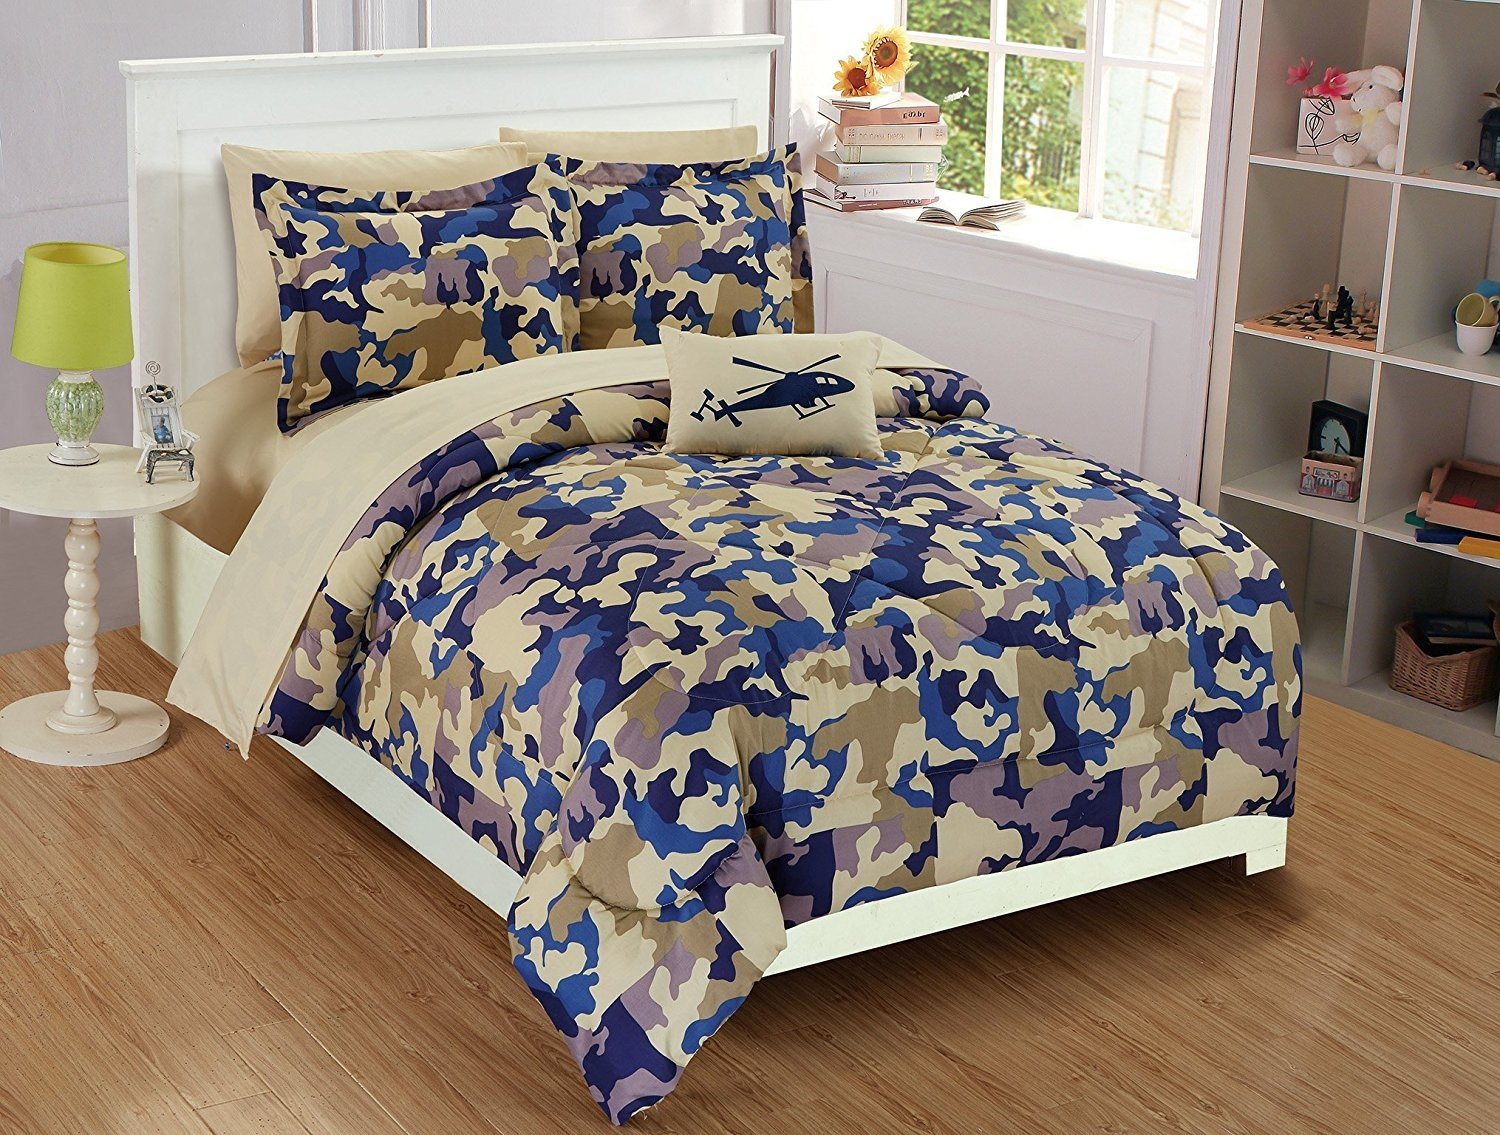 Fancy Collection 8pc Full Size Kids/Teen Army Camouflage Beige Taupe Blue Comforter Set New